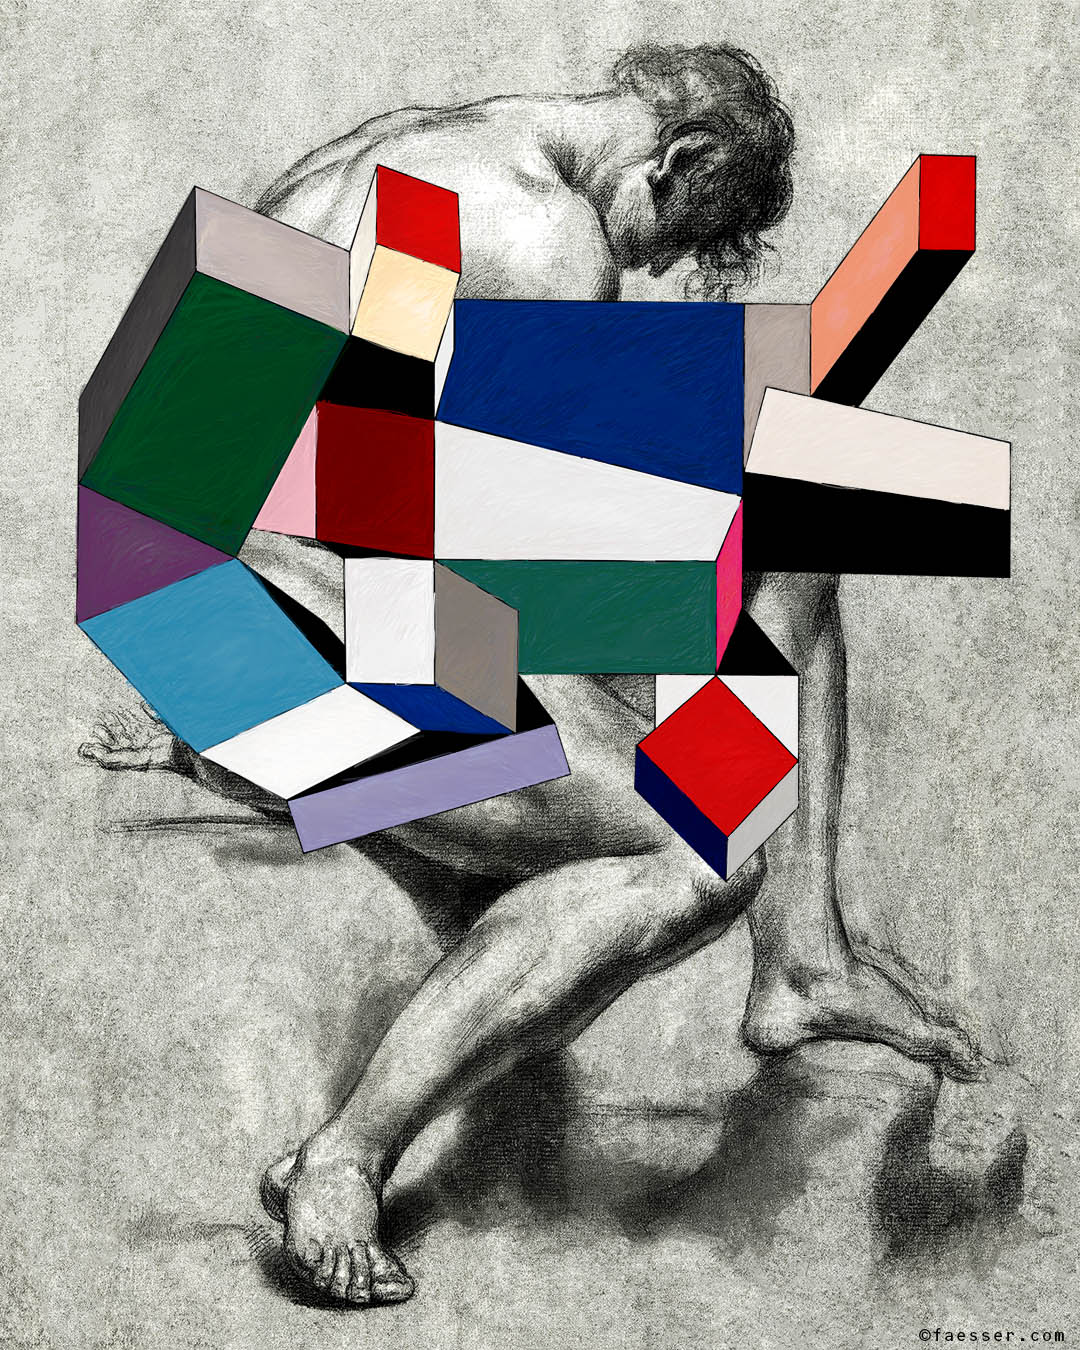 Unknown men's nude drawing with abstract geometric modules; work of art as figurative painting; artist Roland Faesser, sculptor and painter 2018